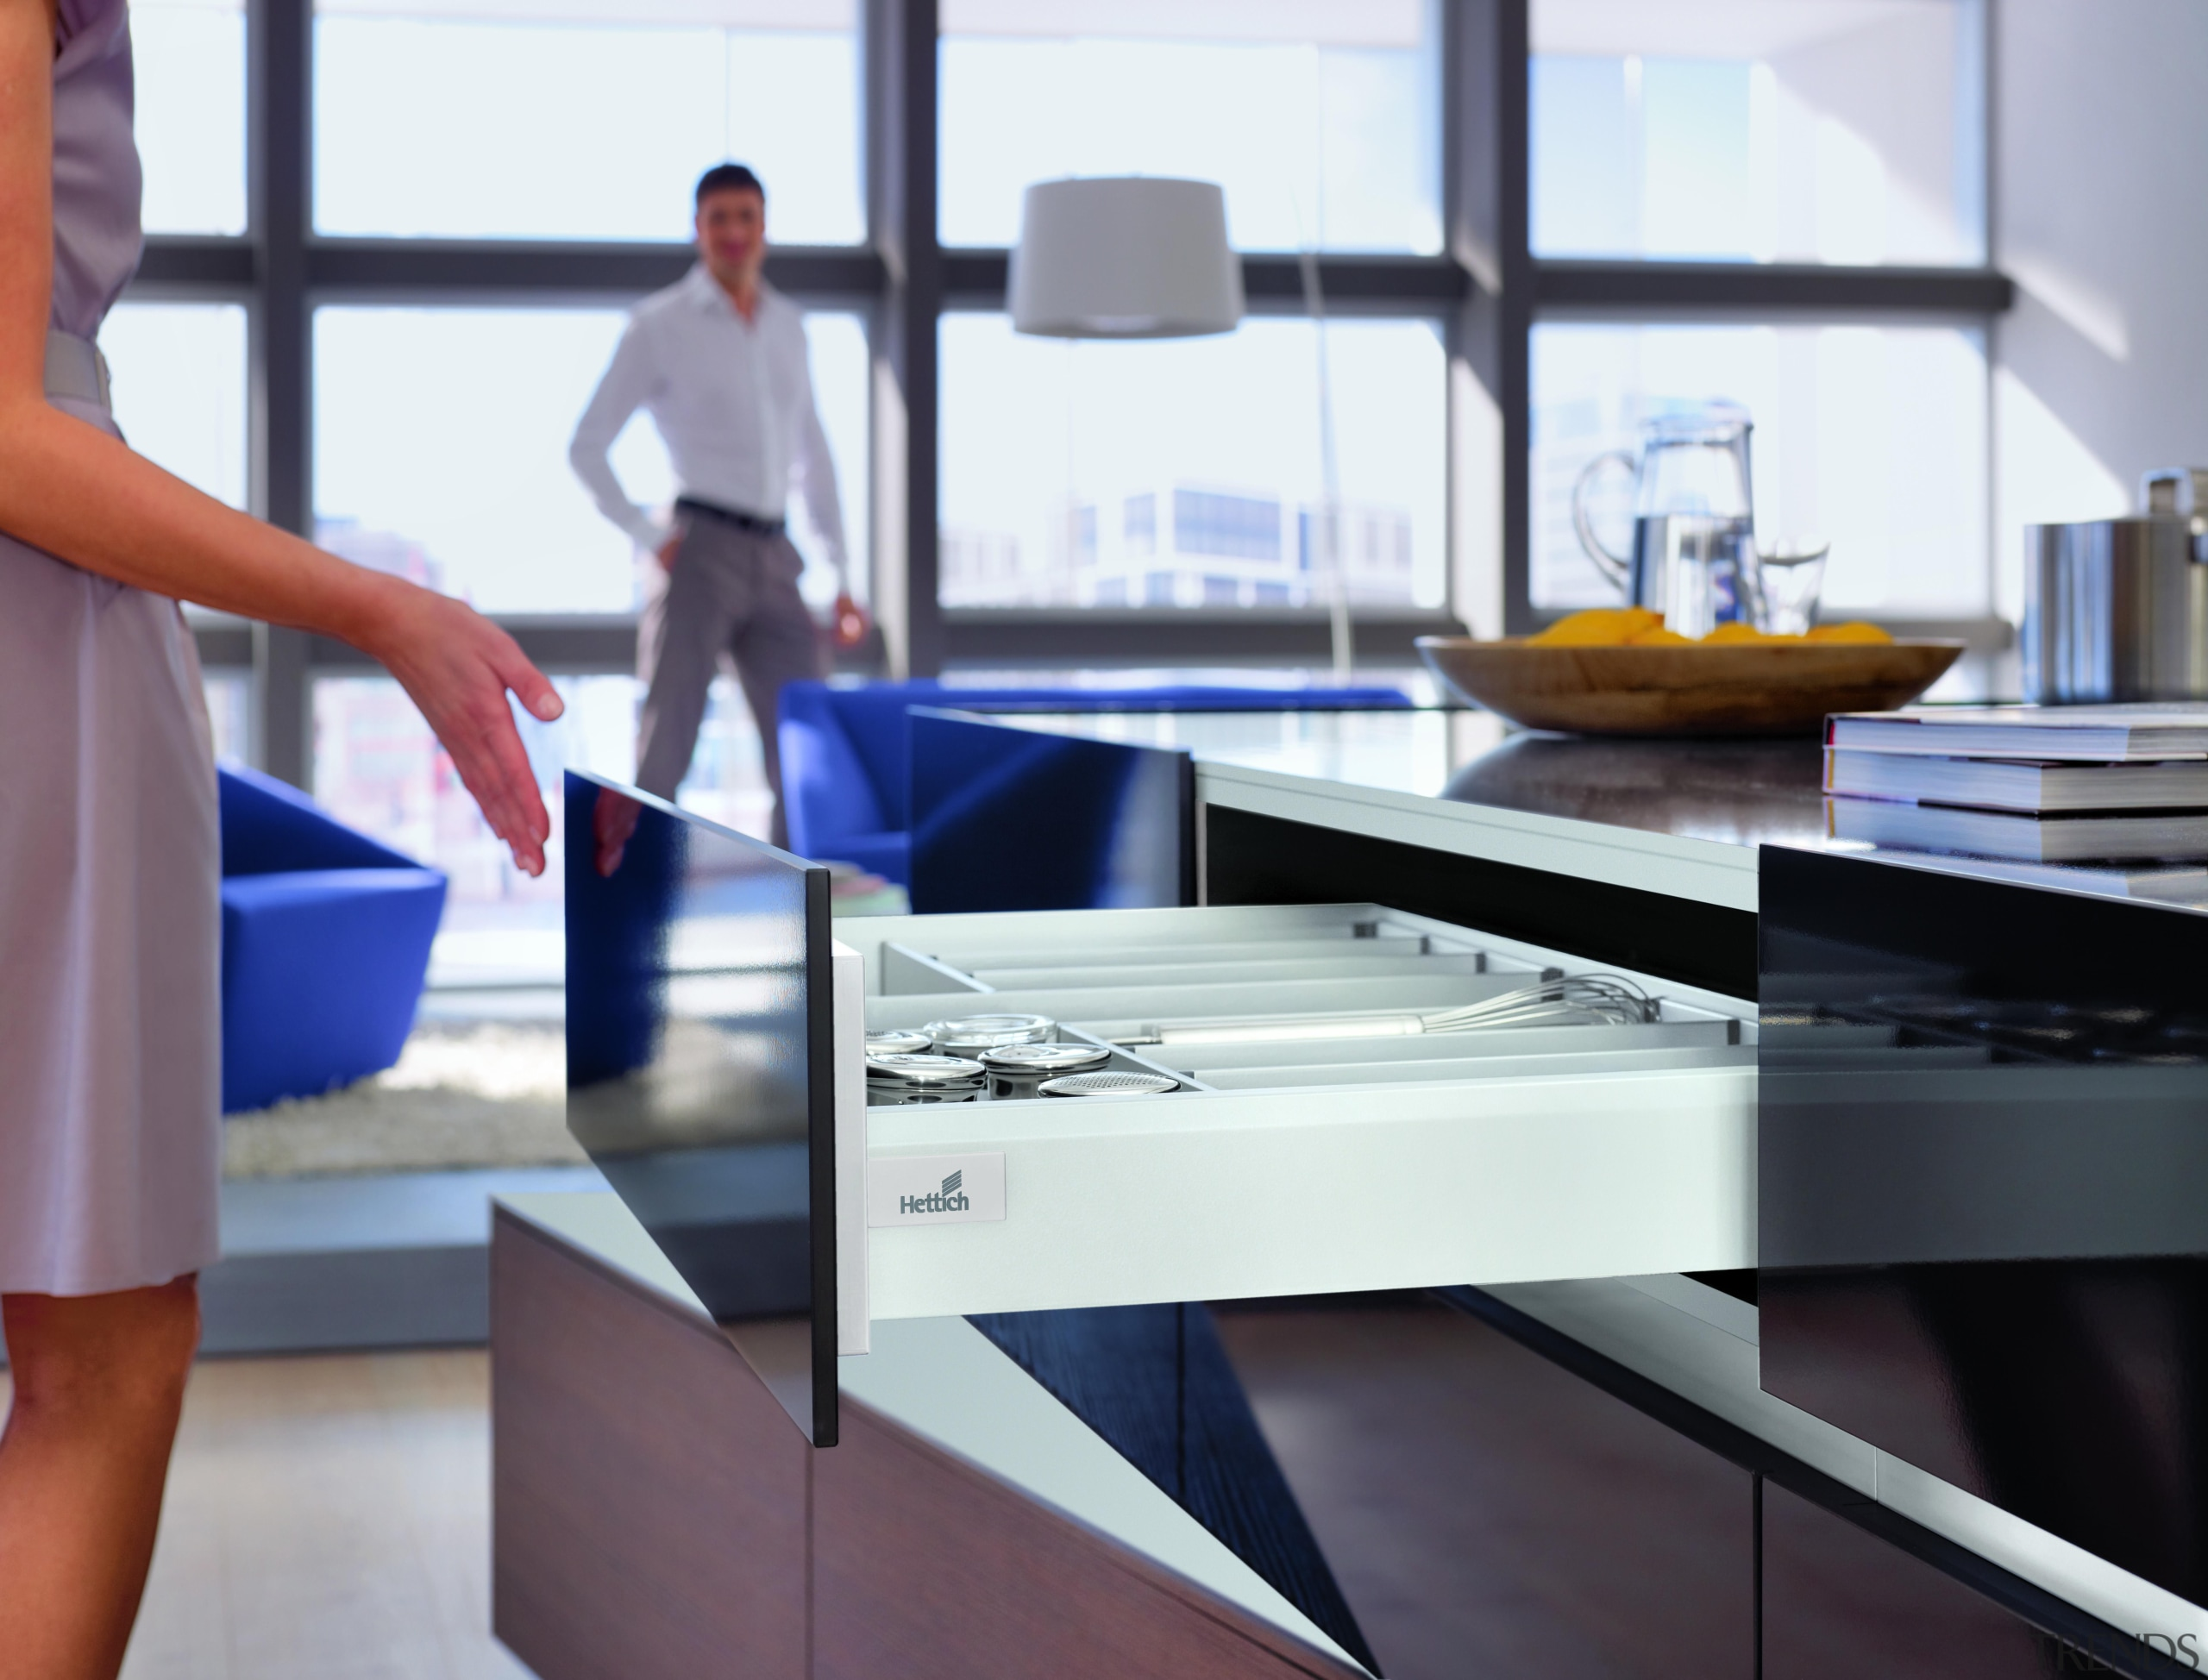 Design your kitchen your way - Design your countertop, furniture, interior design, kitchen, product design, table, gray, white